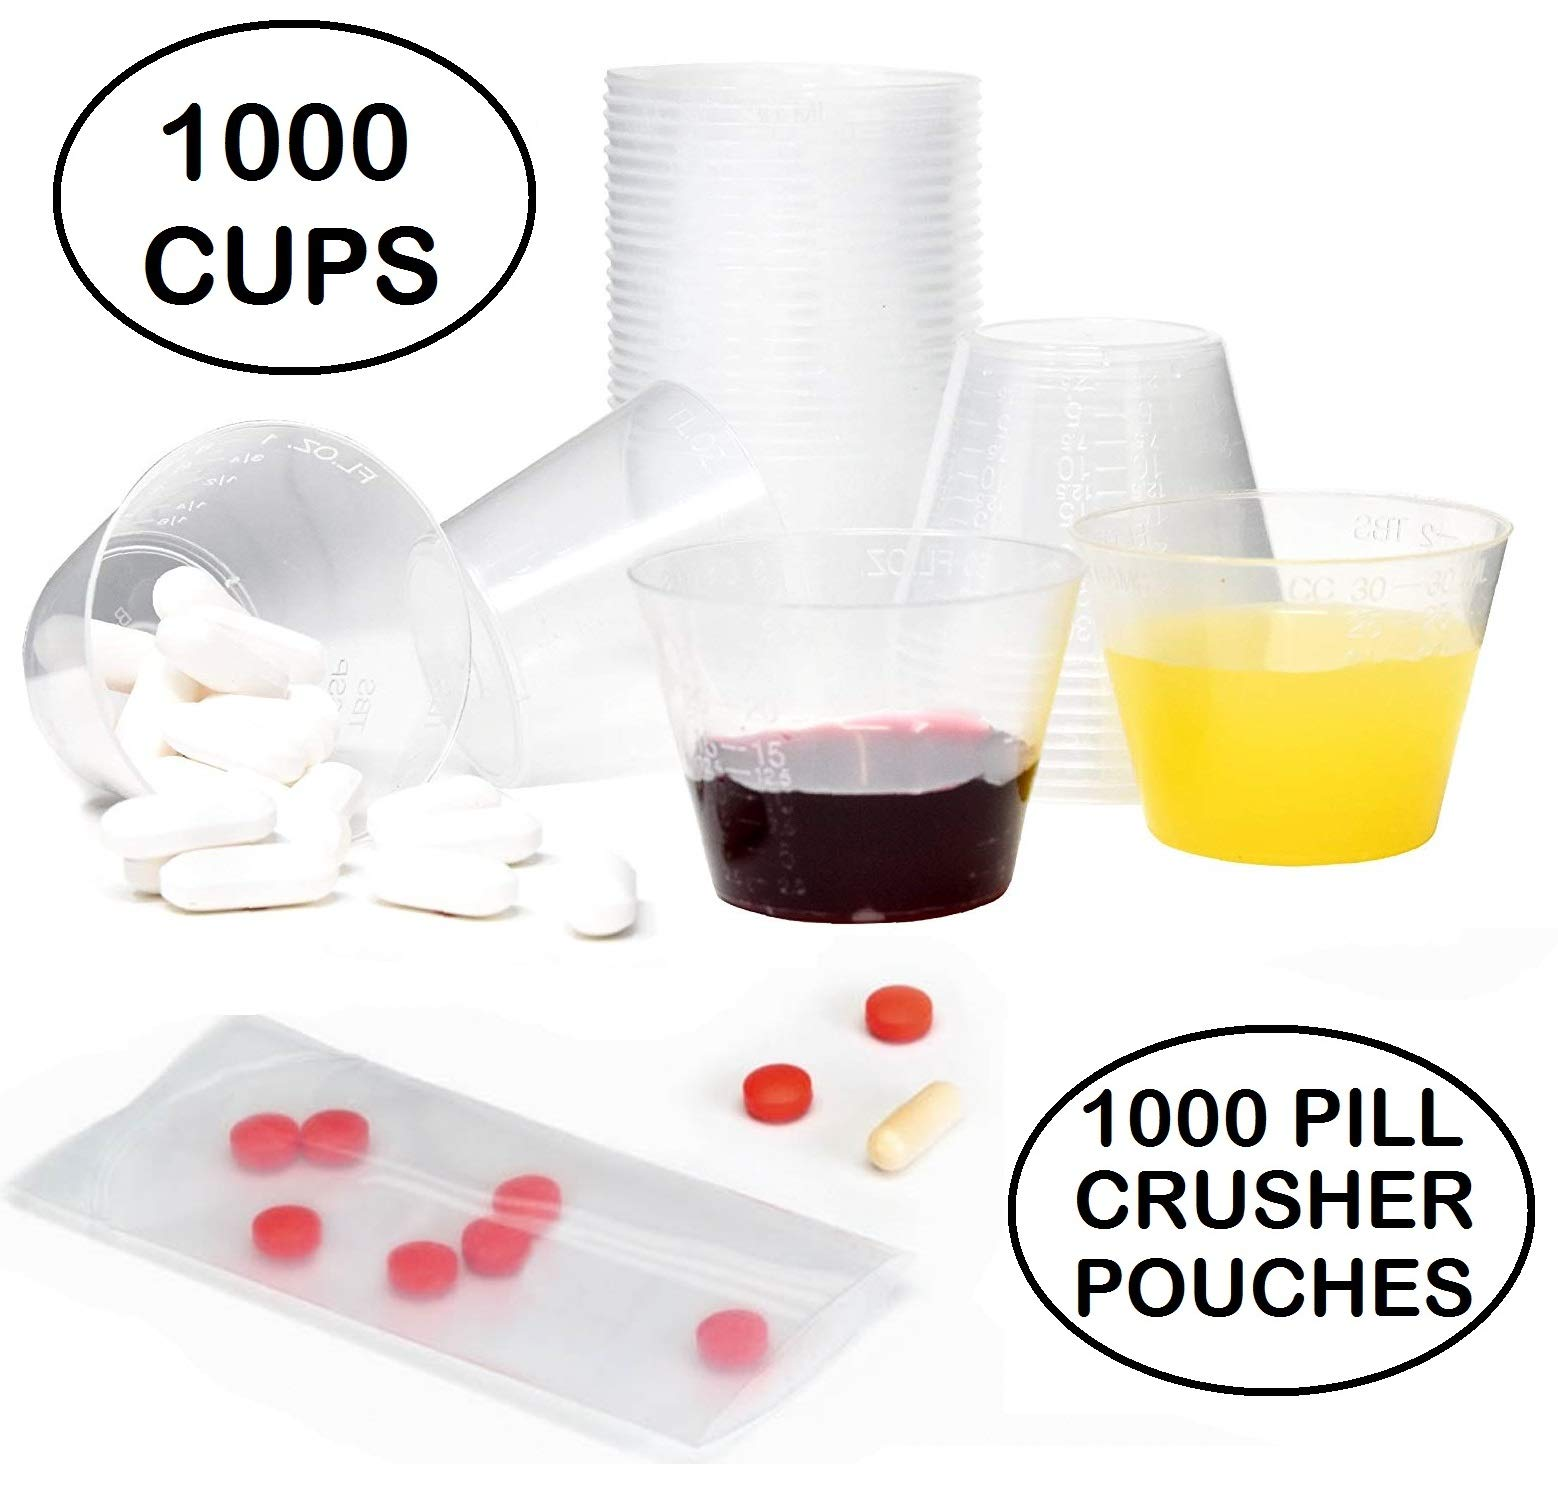 1000 Disposable 1oz Plastic Medicine Cups and 1000 Disposable Pill Crusher Pouches Combined in a Handy Pack for Easy, Clean, Effective Medicine Consumption. by MediCups